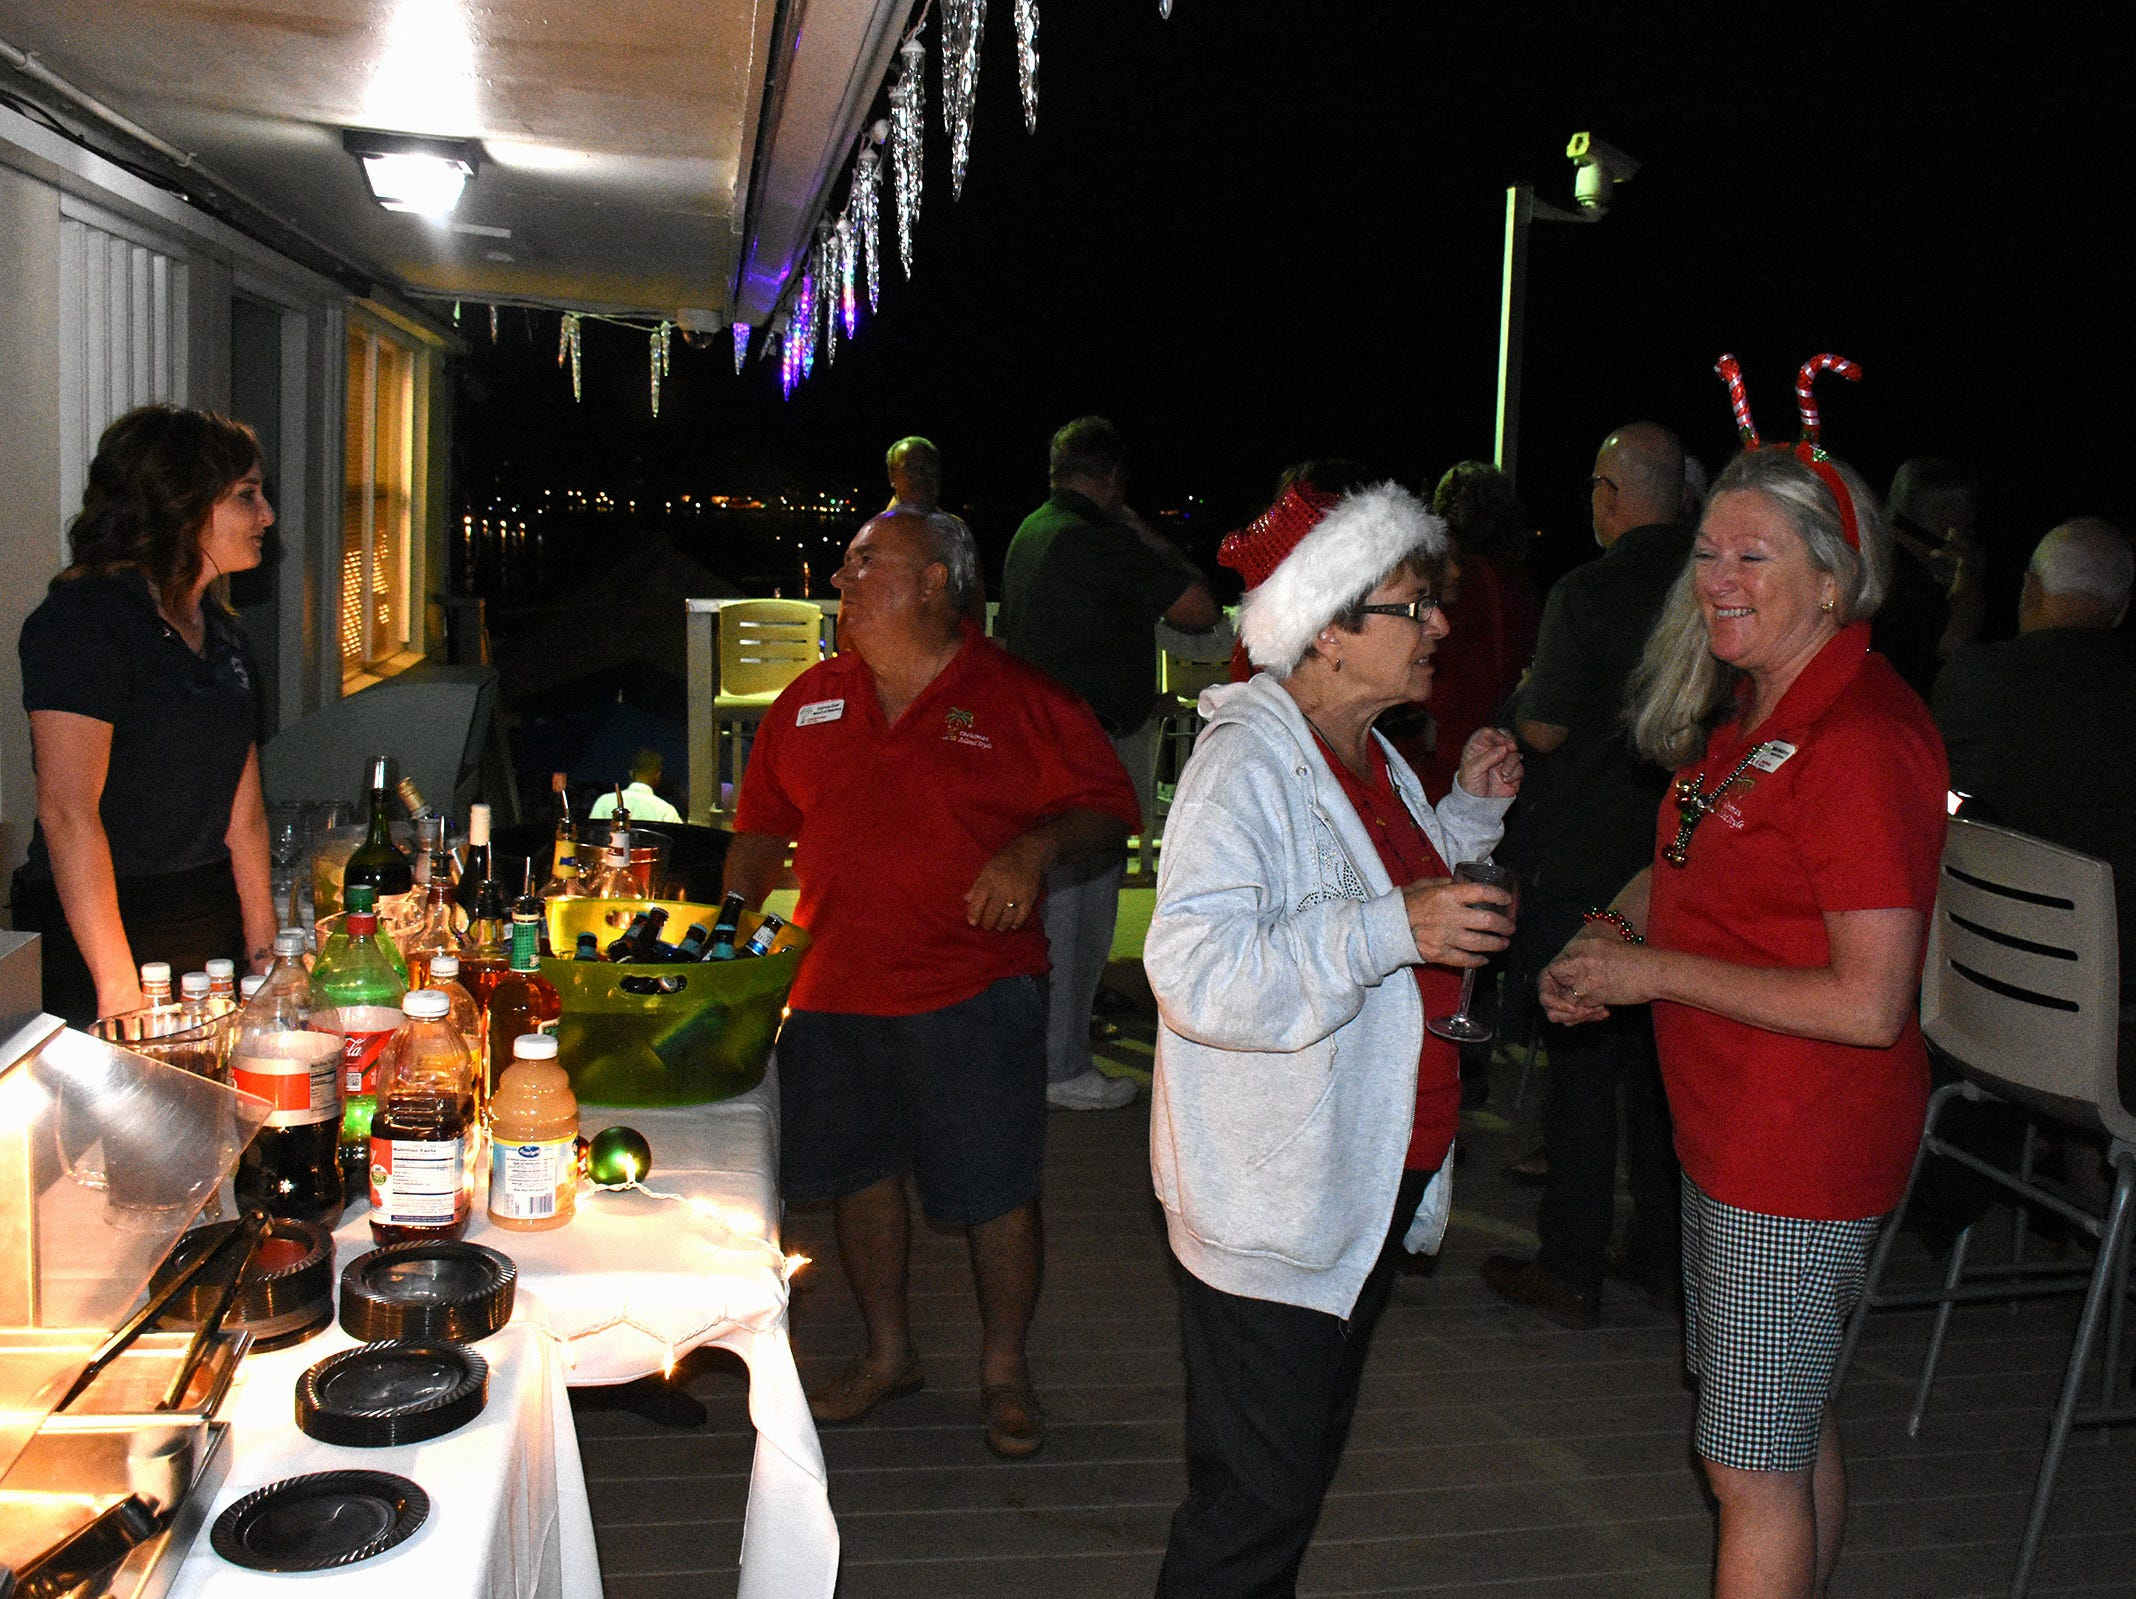 Bette McGilvray, right, talked with Barbara Dasti at the judges' stand atop the Snook Inn during the Christmas Island Style boat parade lit on Marco Island.